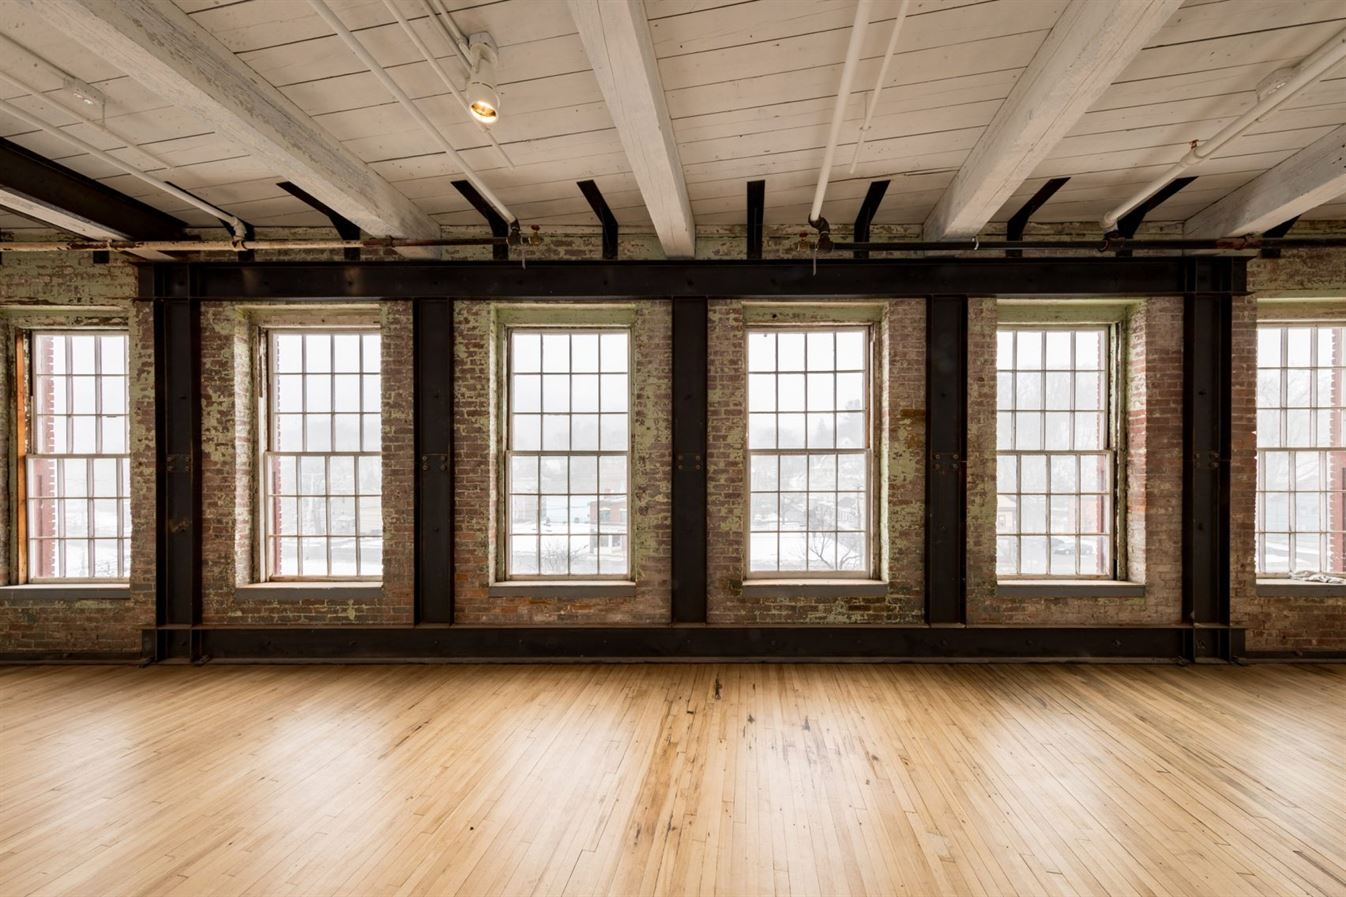 bruner-cott-mass-moca-massachusetts-museum-of-contemporary-art-museum-textile-factory-berkshires-expansio99999n-renovation_dezeen_5-1704